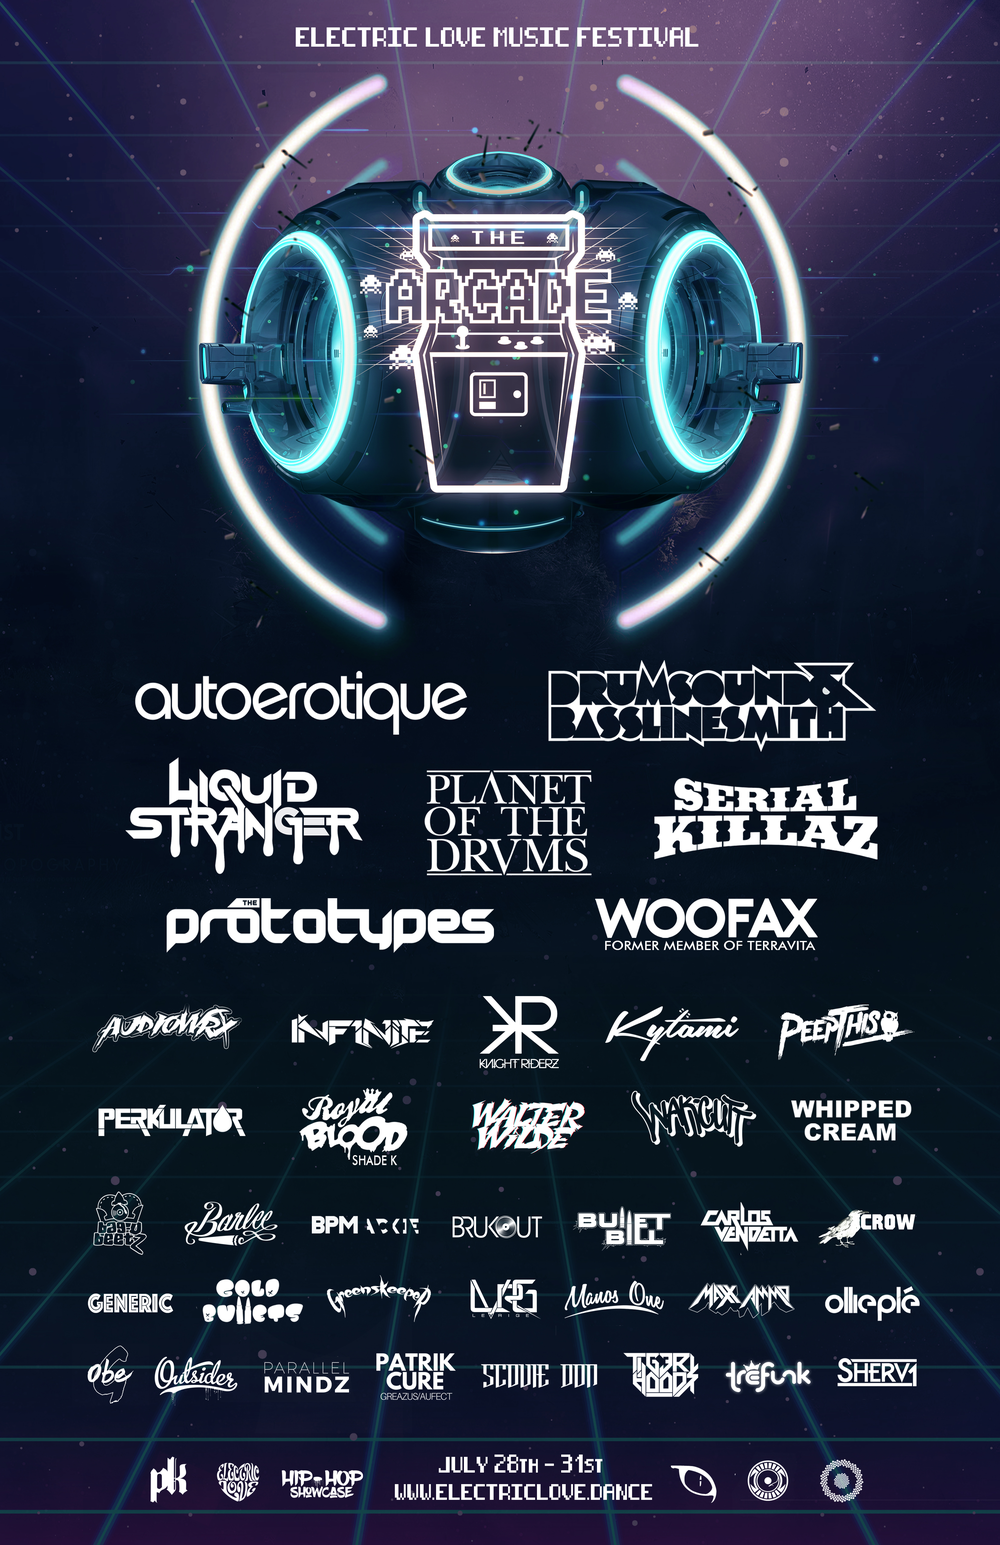 The-Arcade-Stage-Electric-Love-Music-Festival-11X17-Final.png